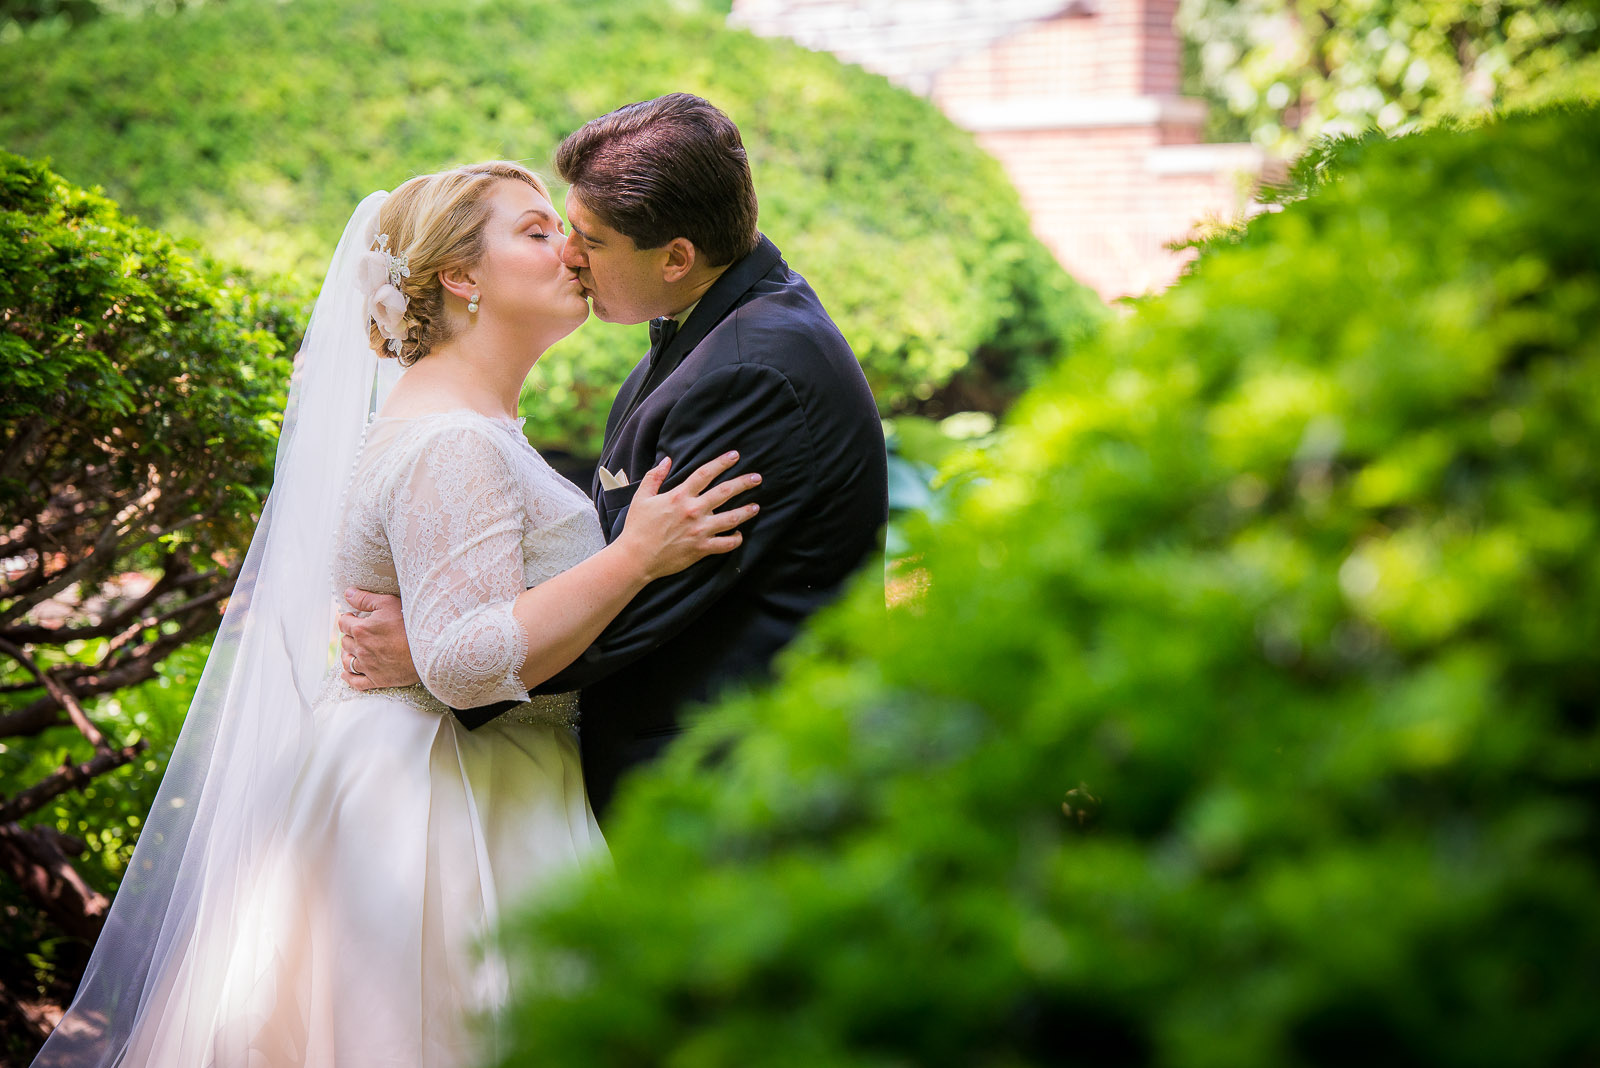 eric_and_christy_photographers_blog_wedding_emilypeter-19